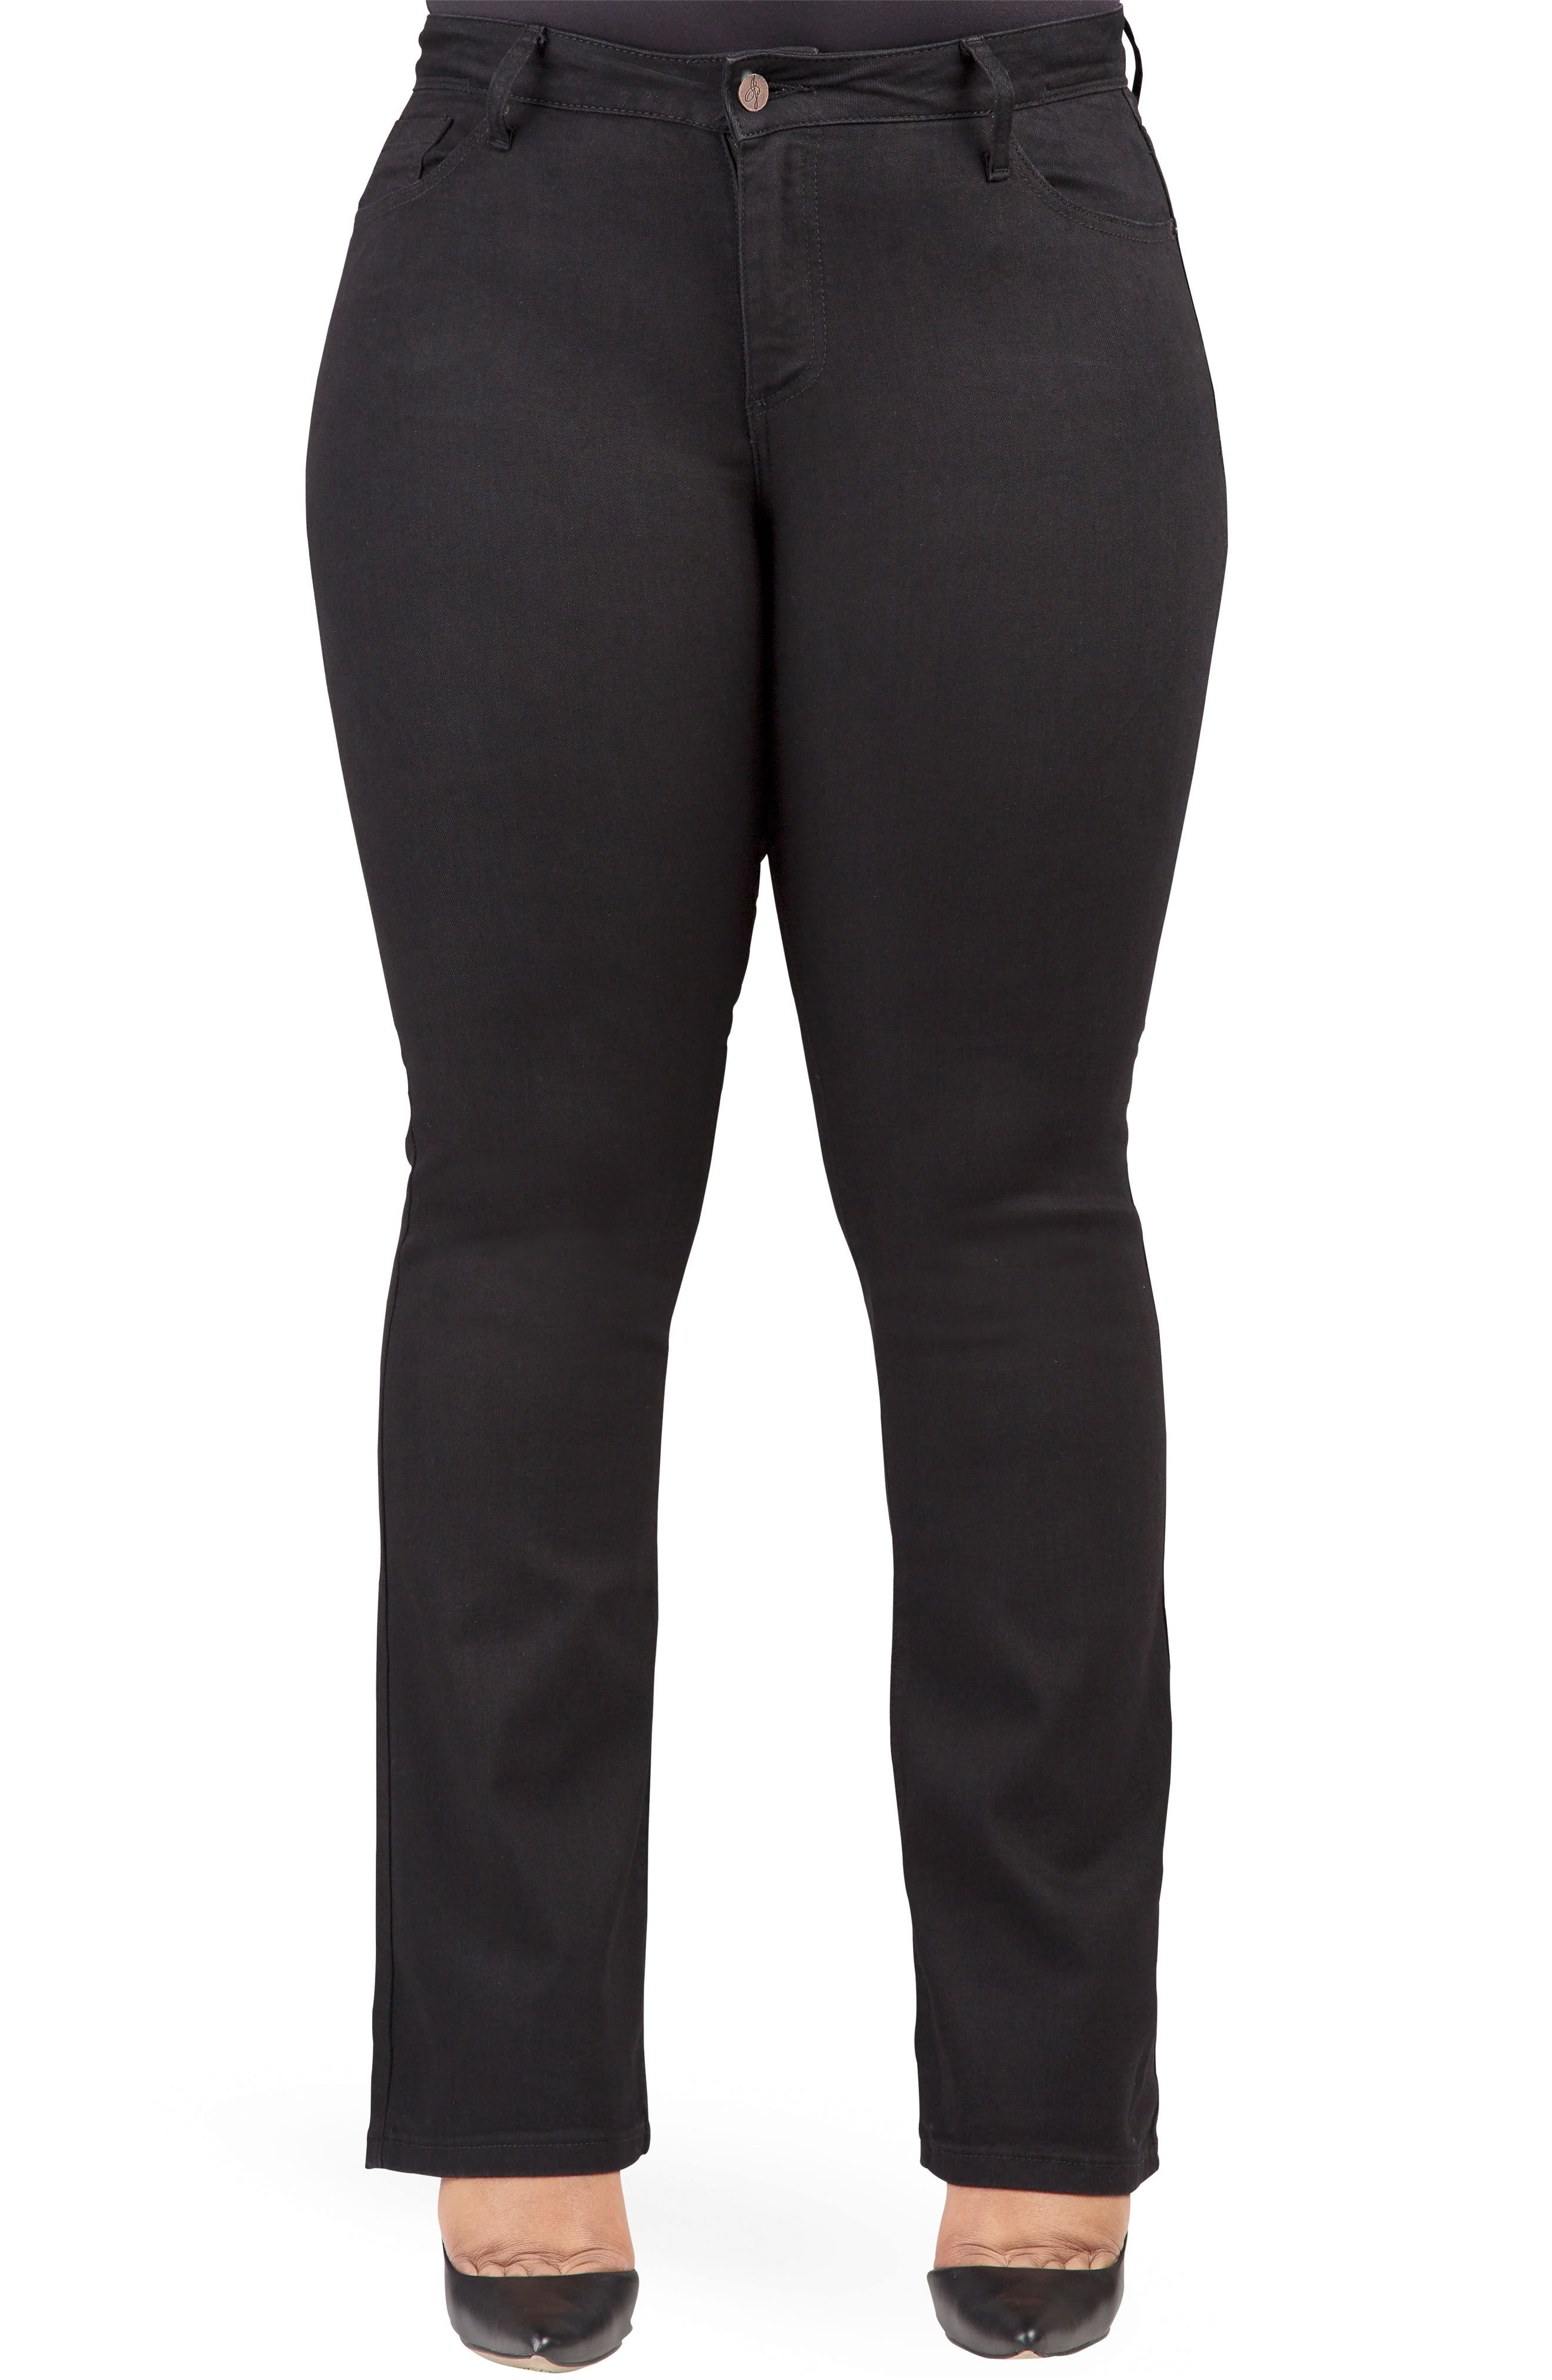 Alternate Image 1 Selected - Poetic Justice Scarlett Slim Bootcut Curvy Fit Jeans (Plus Size)